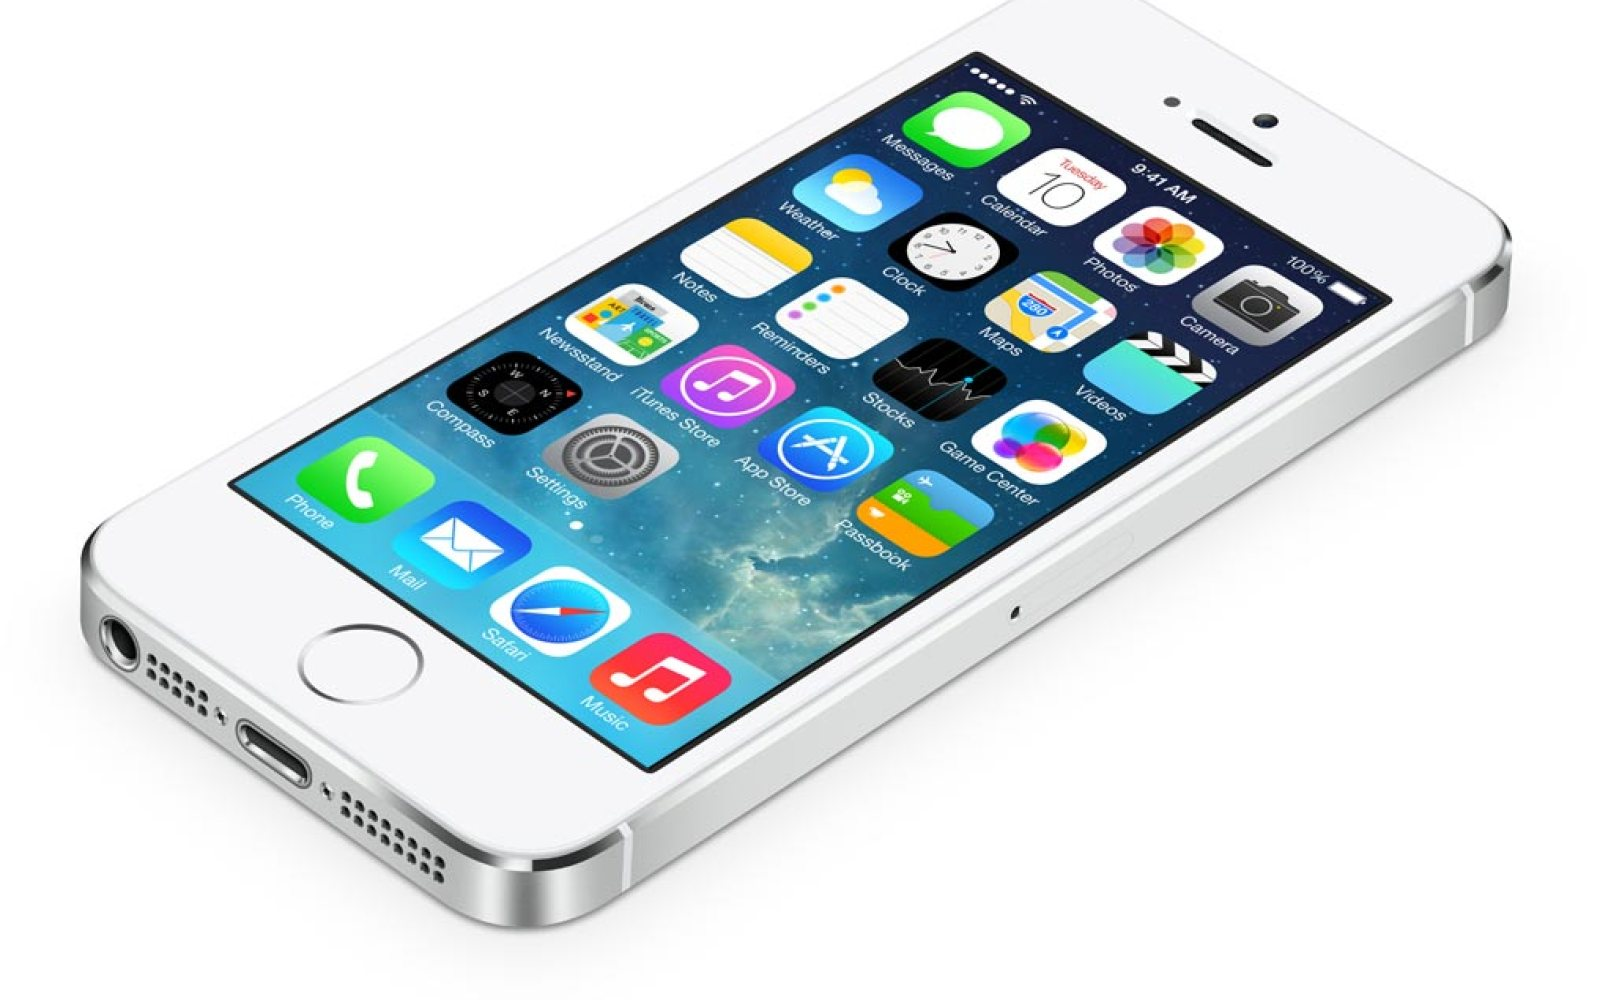 The iOS 7 reviews are here: critics sing the praises of Apple's latest software update